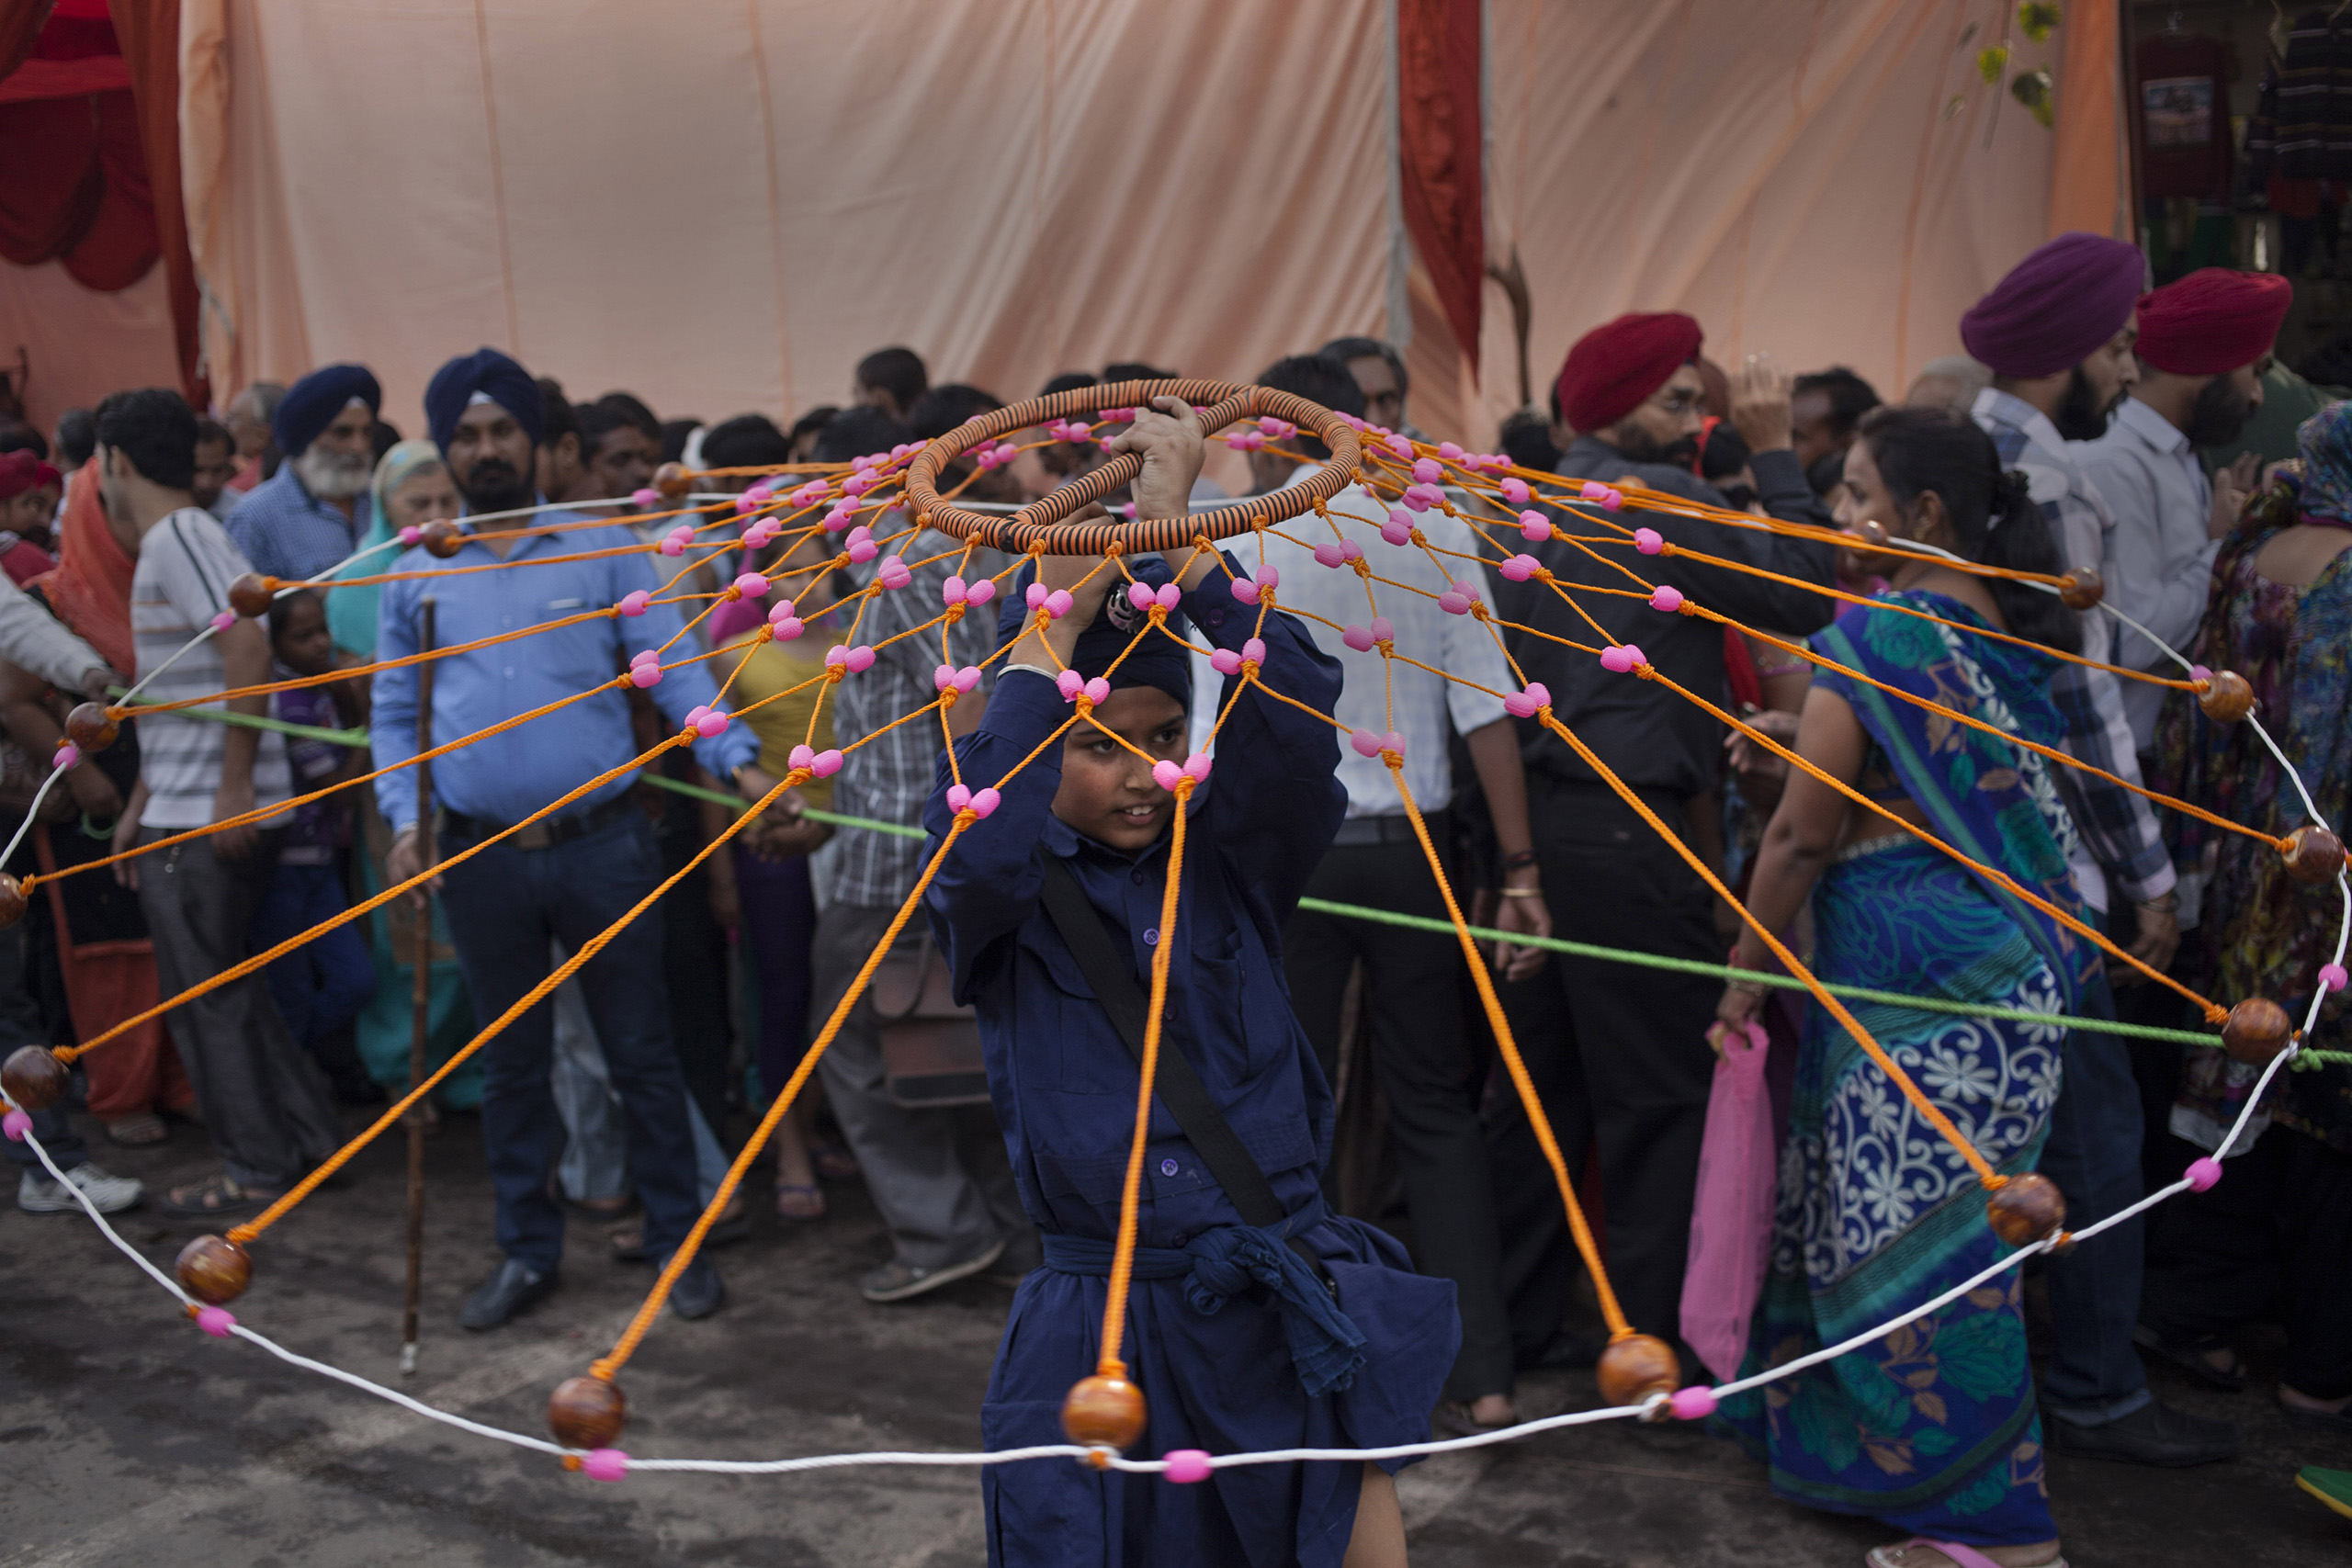 An Indian Sikh boy displays his martial art skills during a religious procession on the eve of the birth anniversary of Guru Nanak, the first Sikh Guru, in New Delhi, India on Nov. 5, 2014.